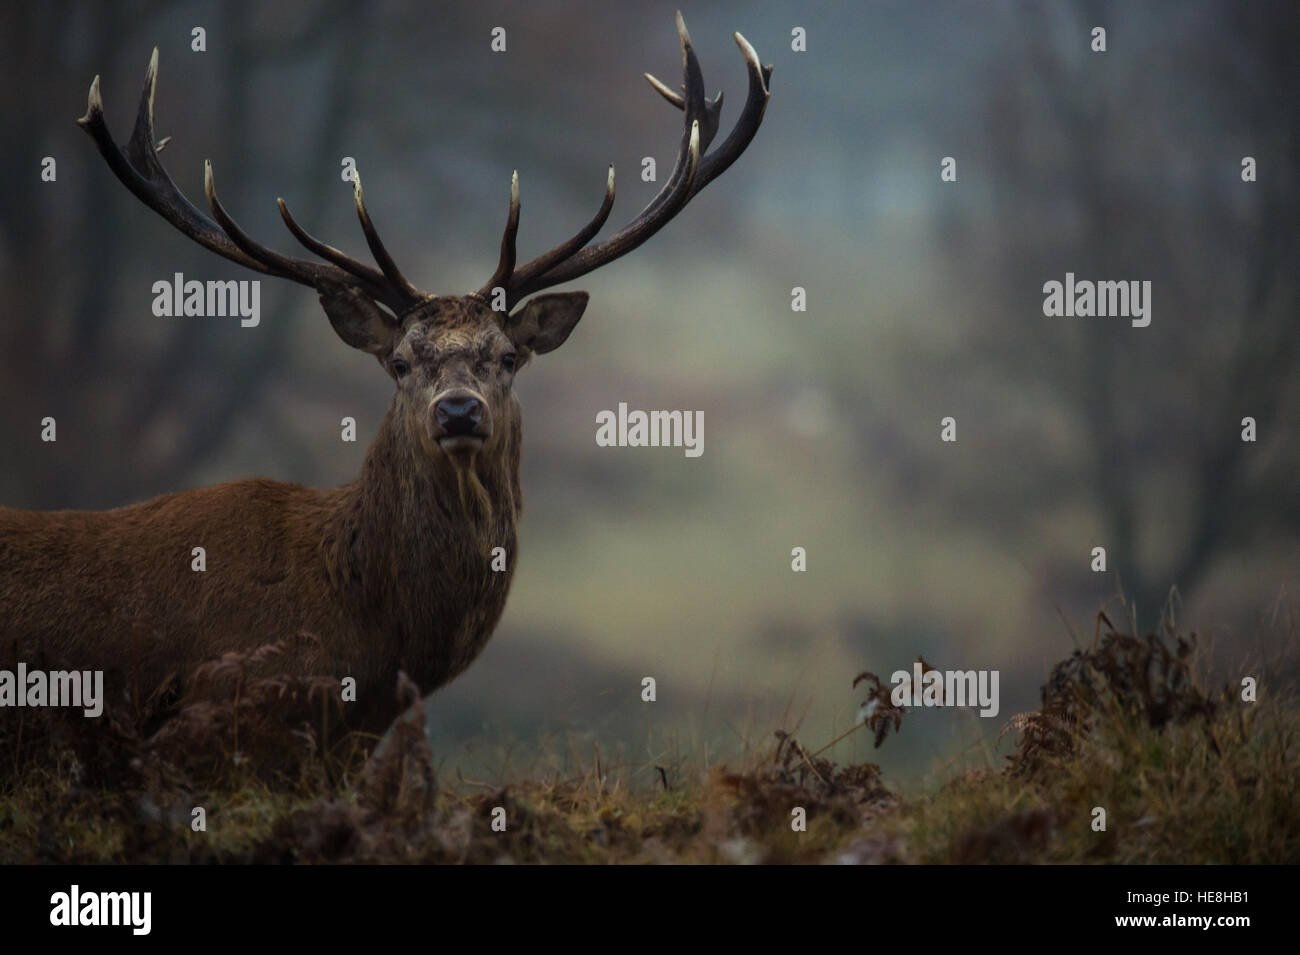 Red deer In richmond park, London, England. - Stock Image